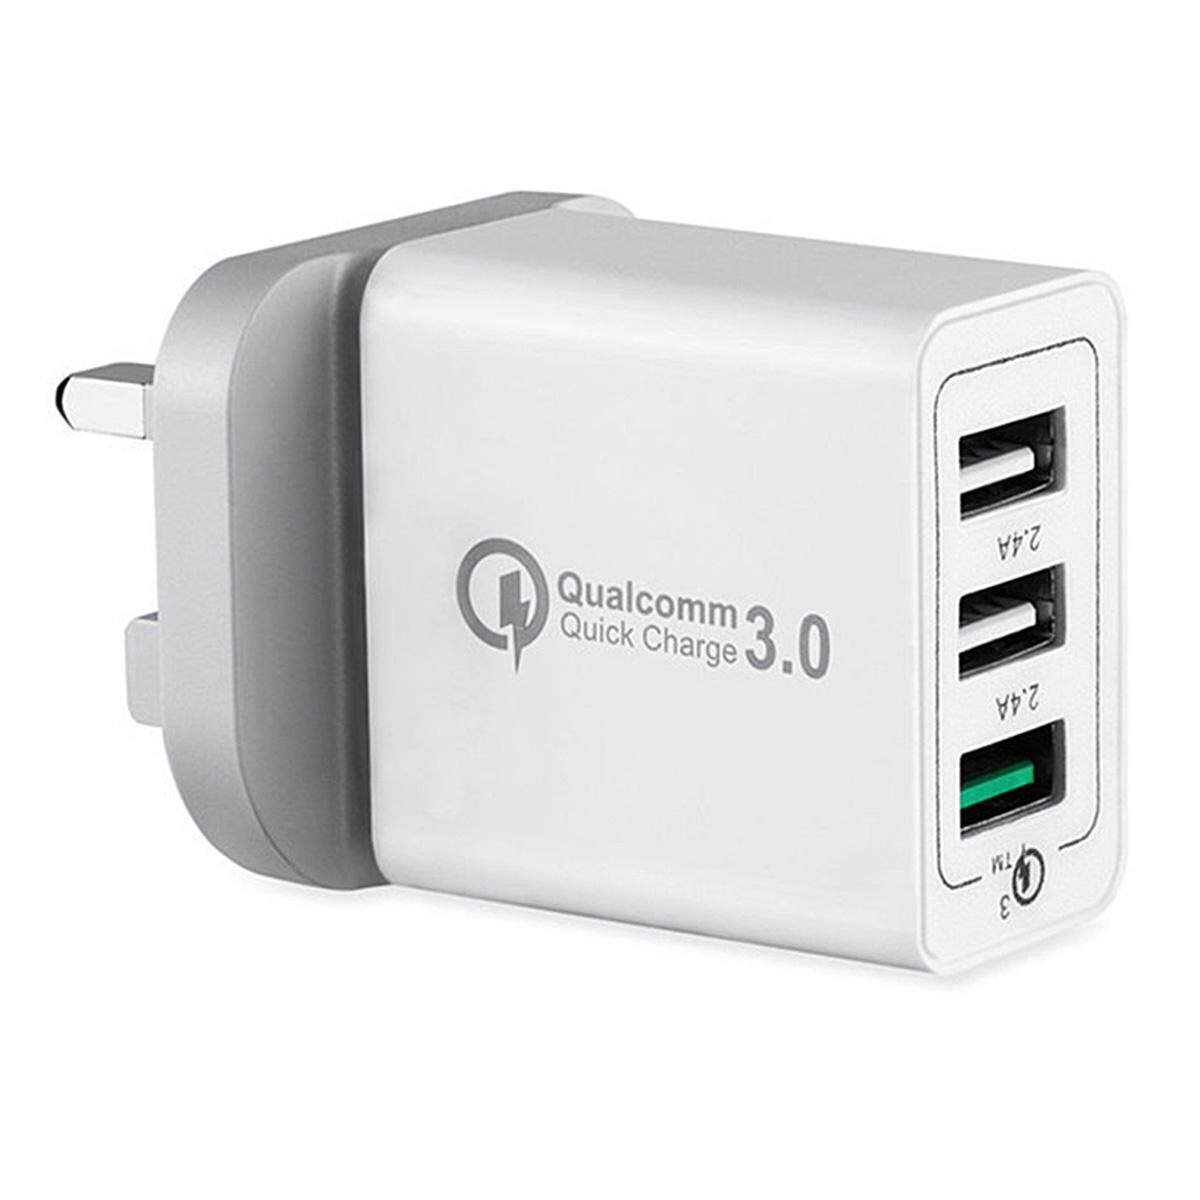 Mini Smile Universal 42w Qc3.0 Quick Charge 3-Port Power Adapter Wall Fast Charger - White (uk Plug) By Extreme Deals.